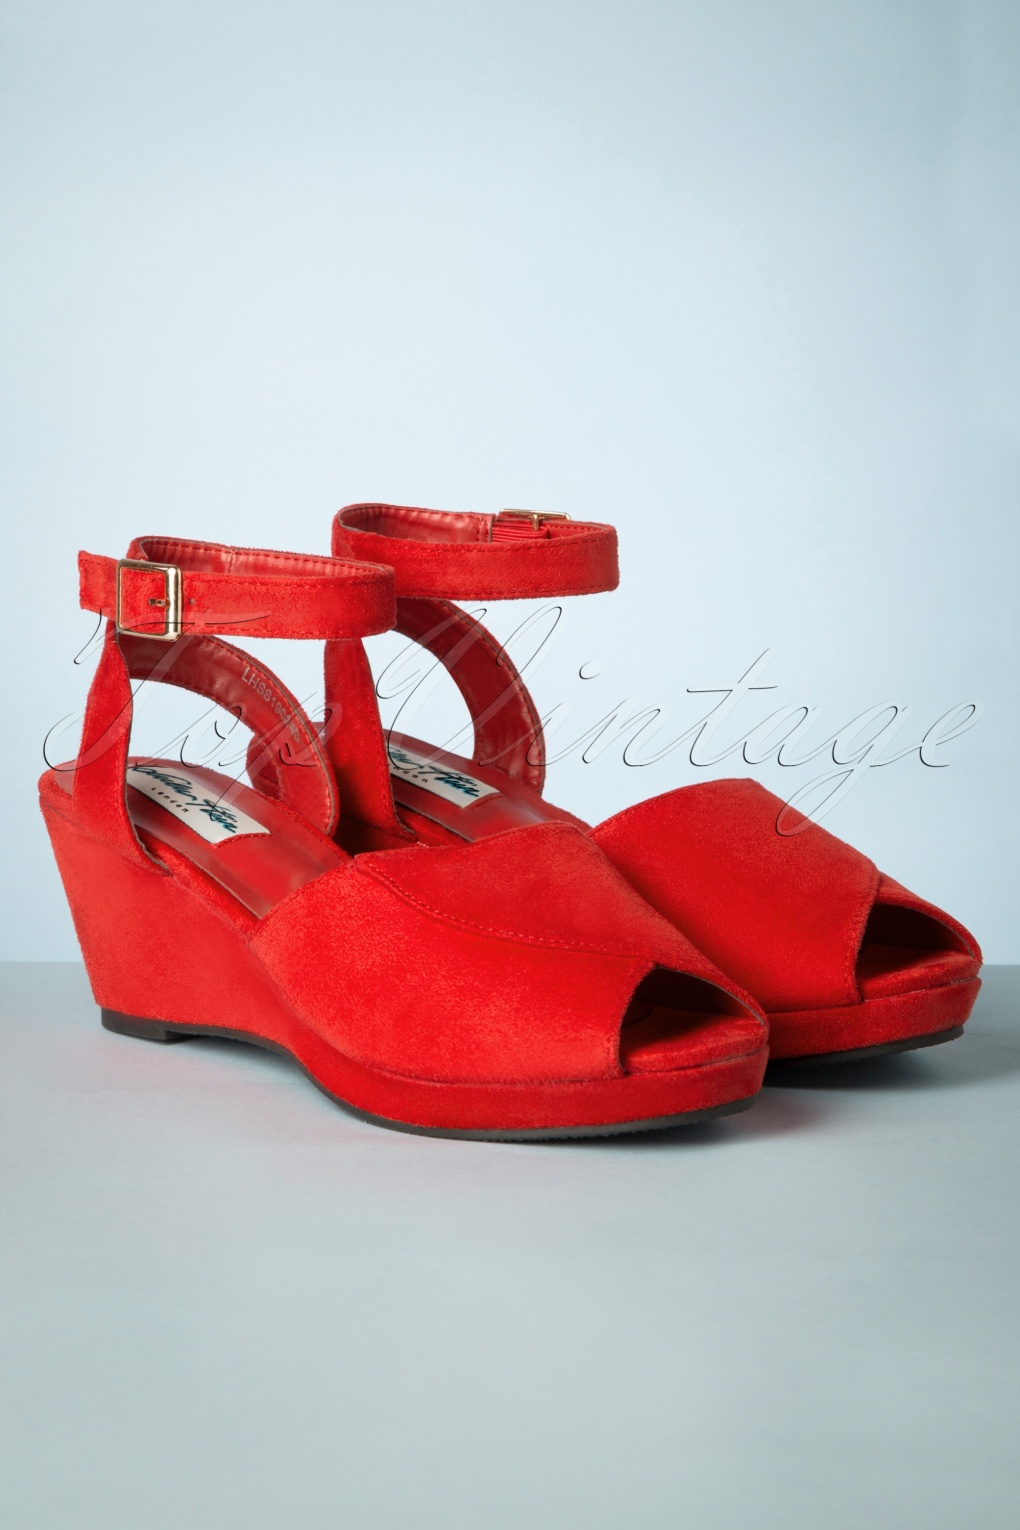 1950s Style Shoes | Heels, Flats, Saddle Shoes 60s Simona Peeptoe Wedge Sandals in Red �40.19 AT vintagedancer.com